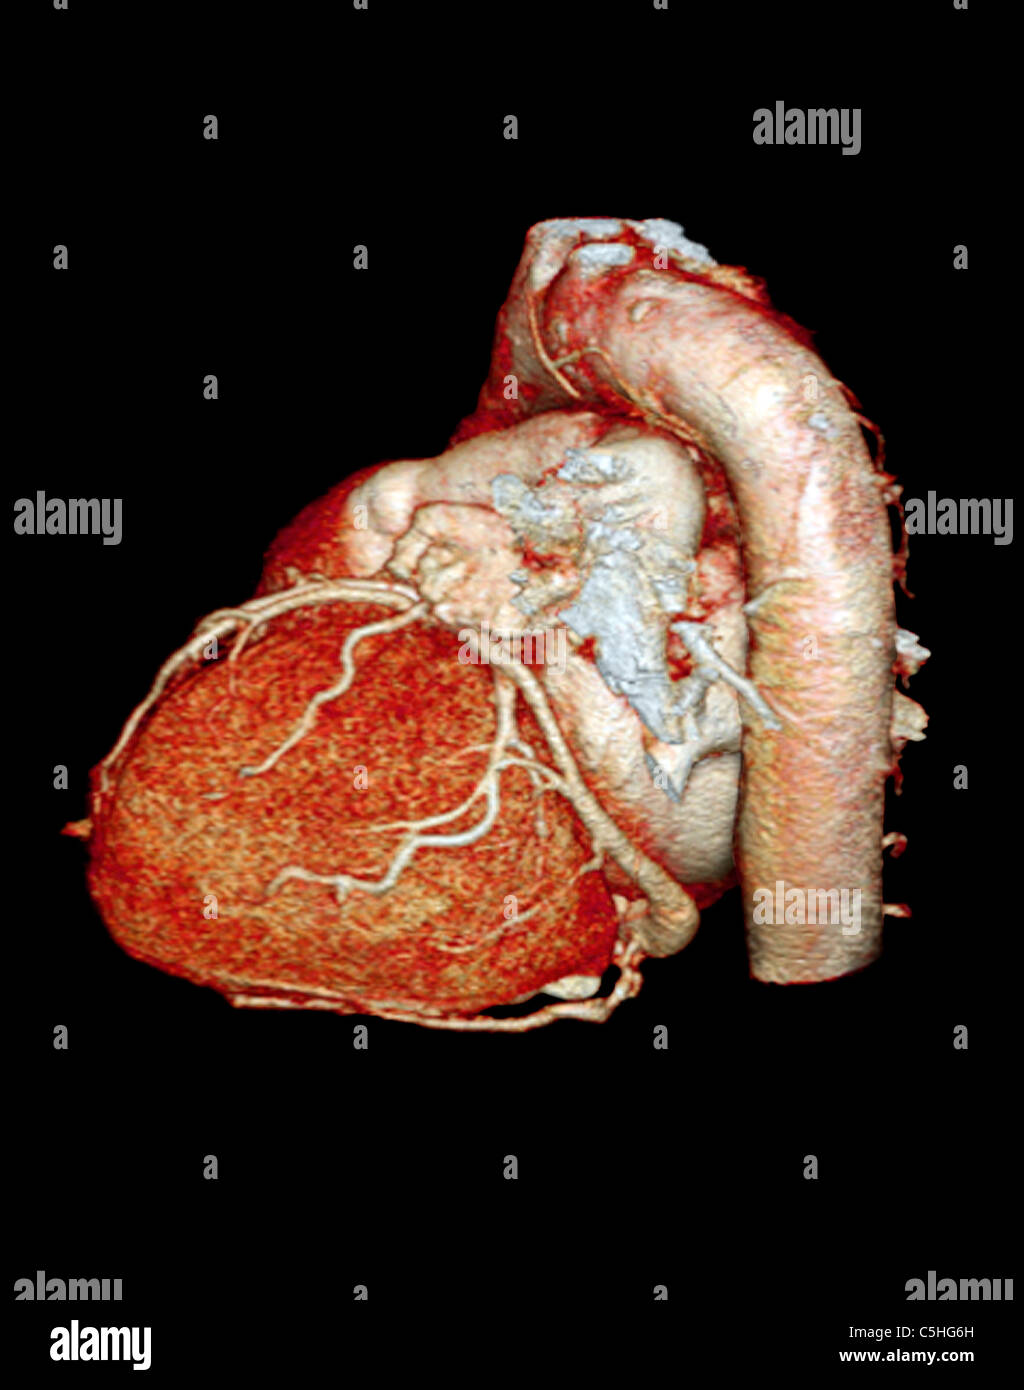 Normal heart, 3D CT scan Stock Photo: 37879929 - Alamy